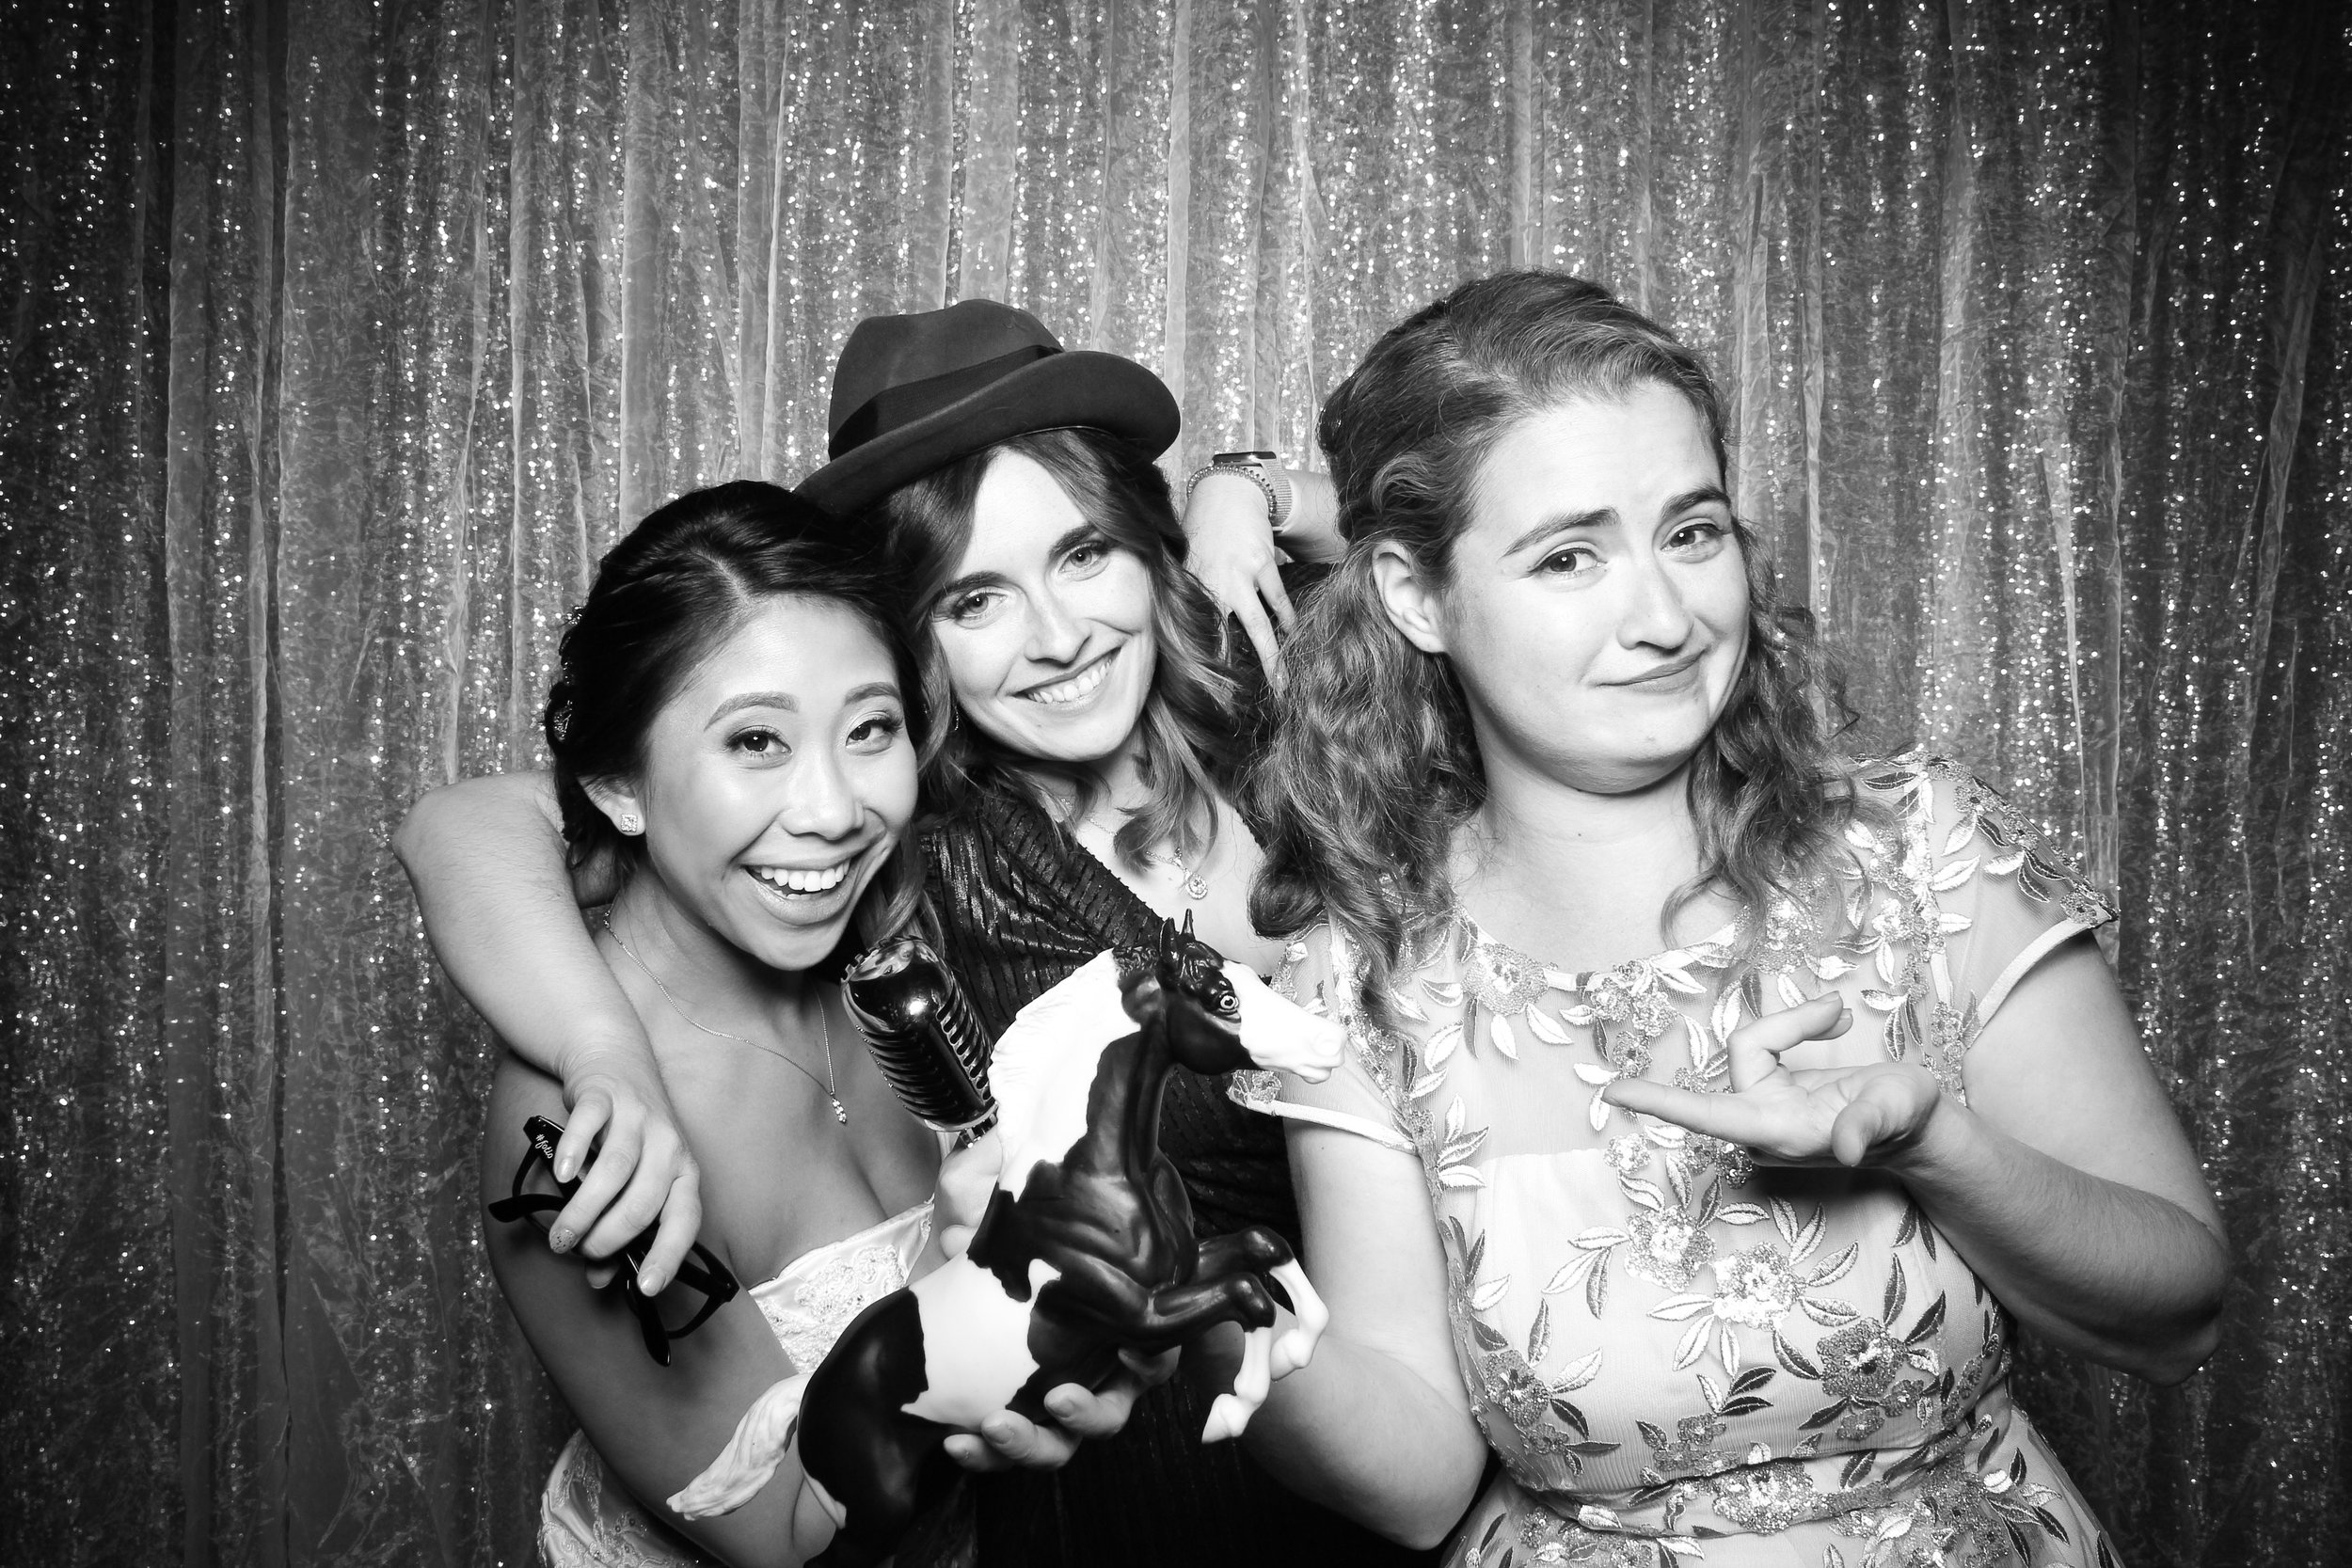 Chicago_Vintage_Wedding_Photobooth_Glen_Club_38.jpg